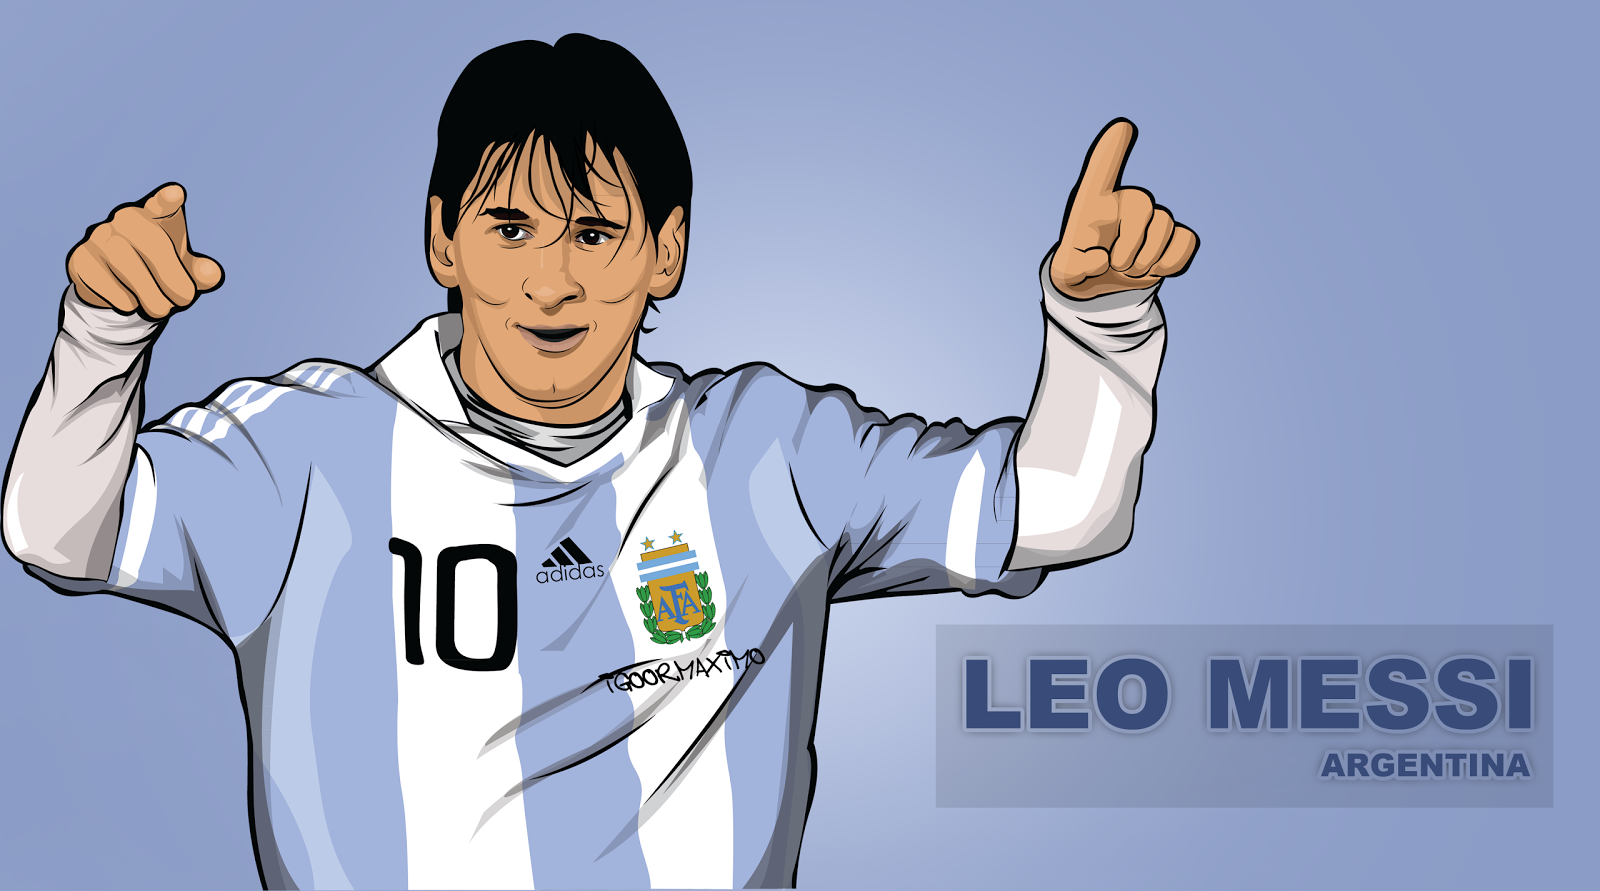 how to draw a soccer player messi